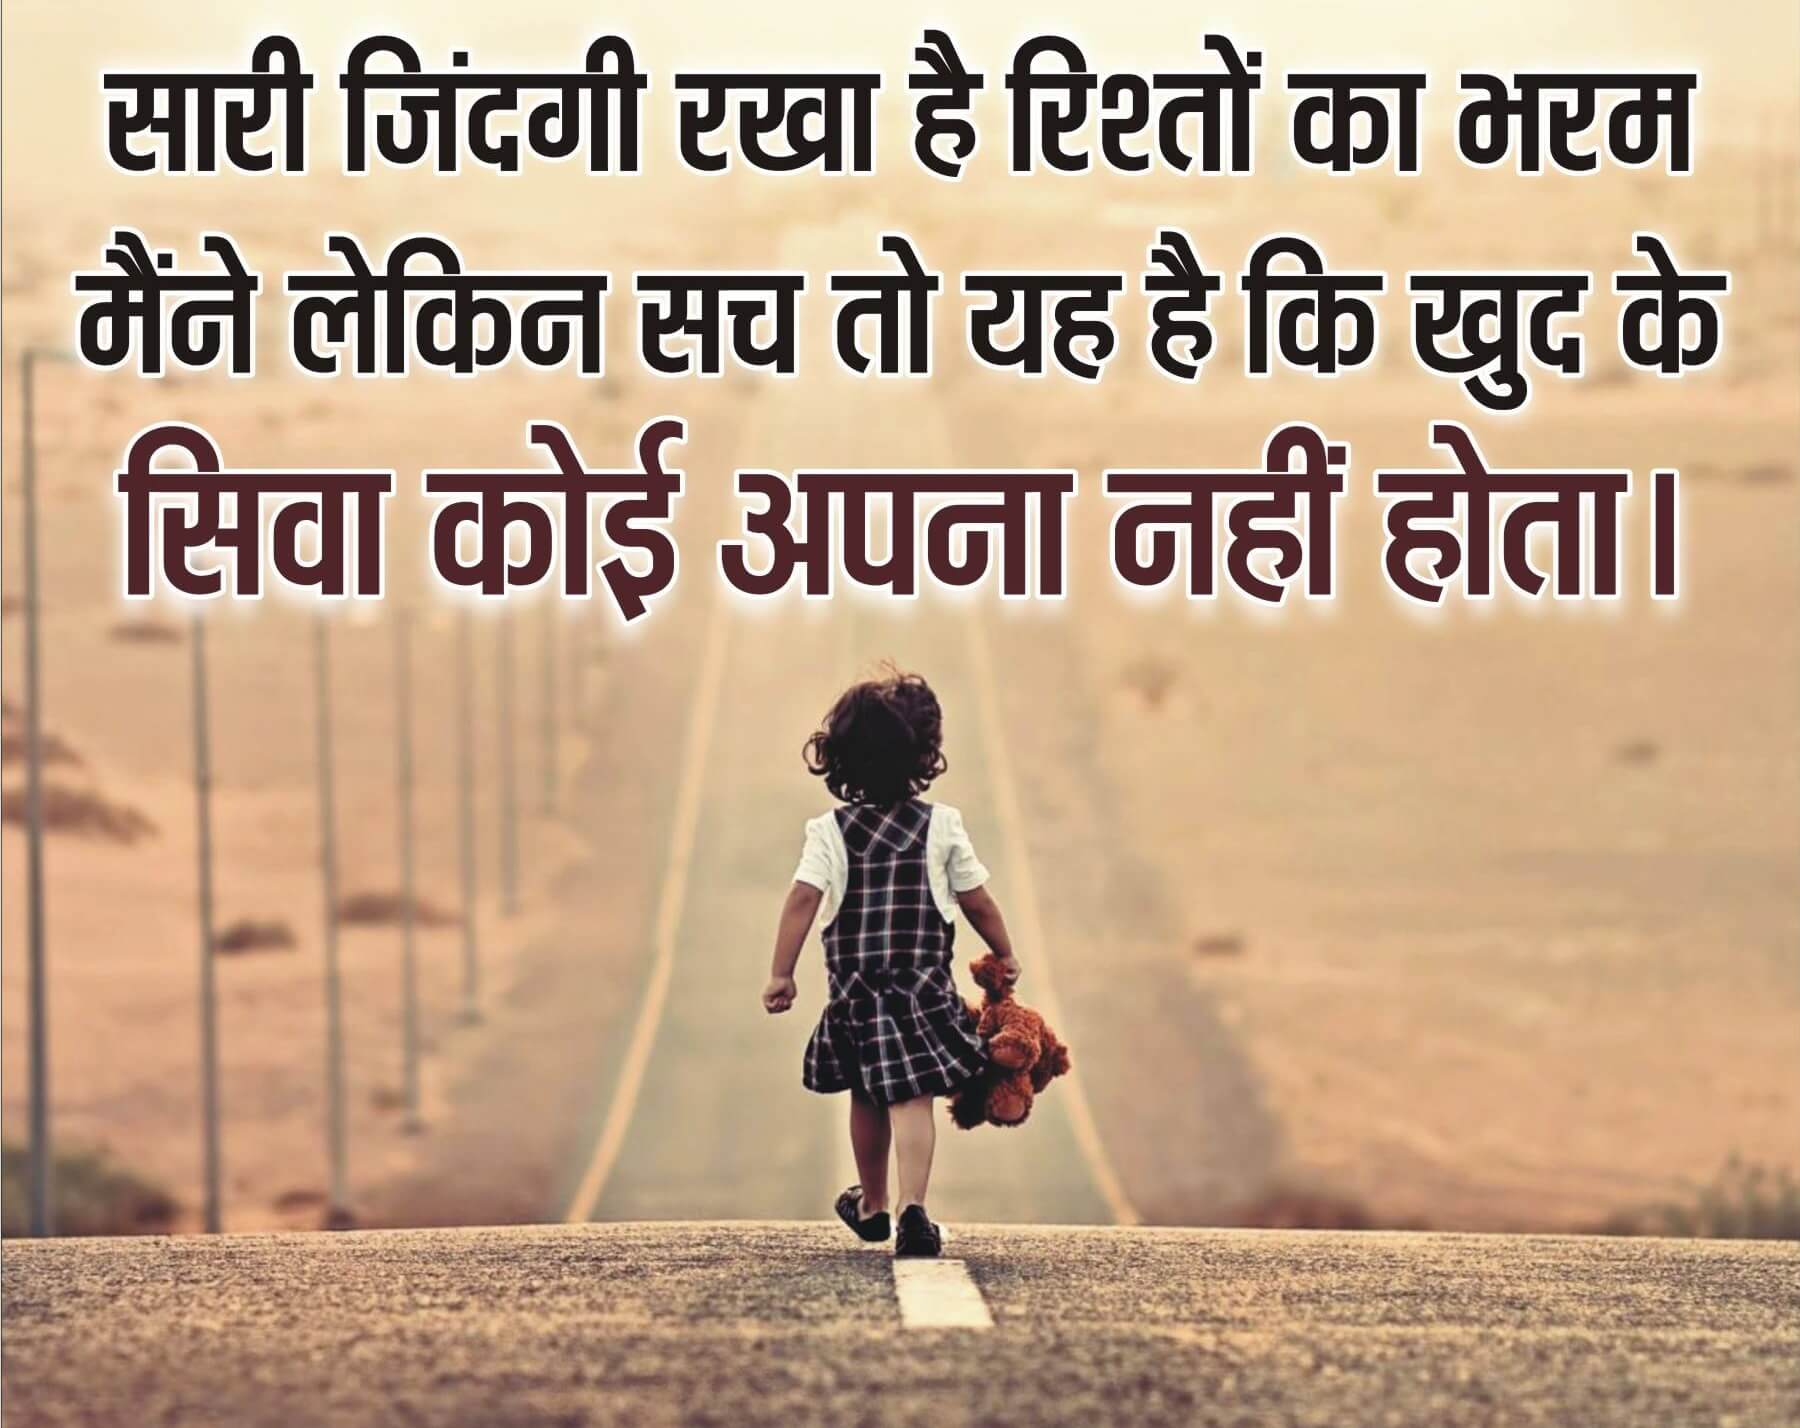 Life Motivational Thoughts in Hindi